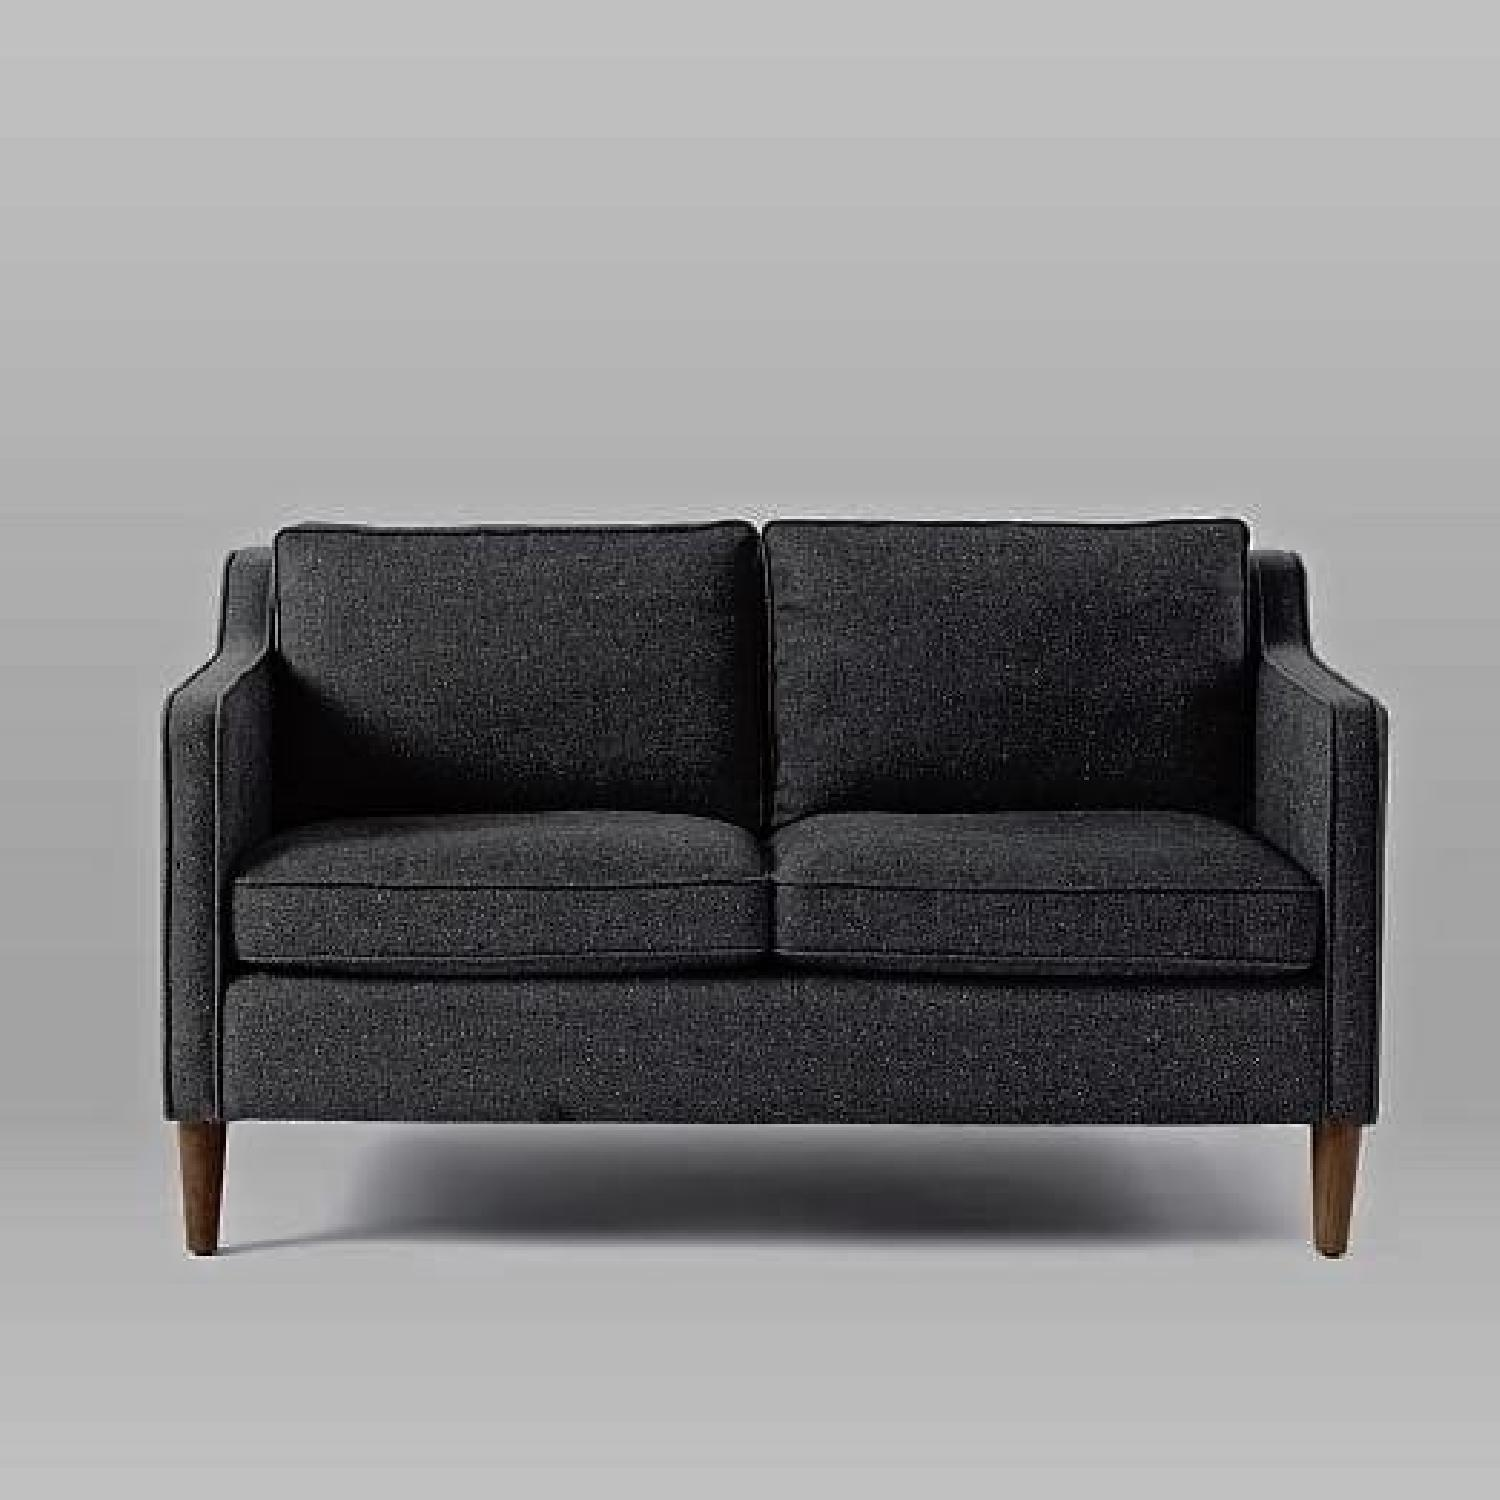 West Elm Hamilton Loveseat-4